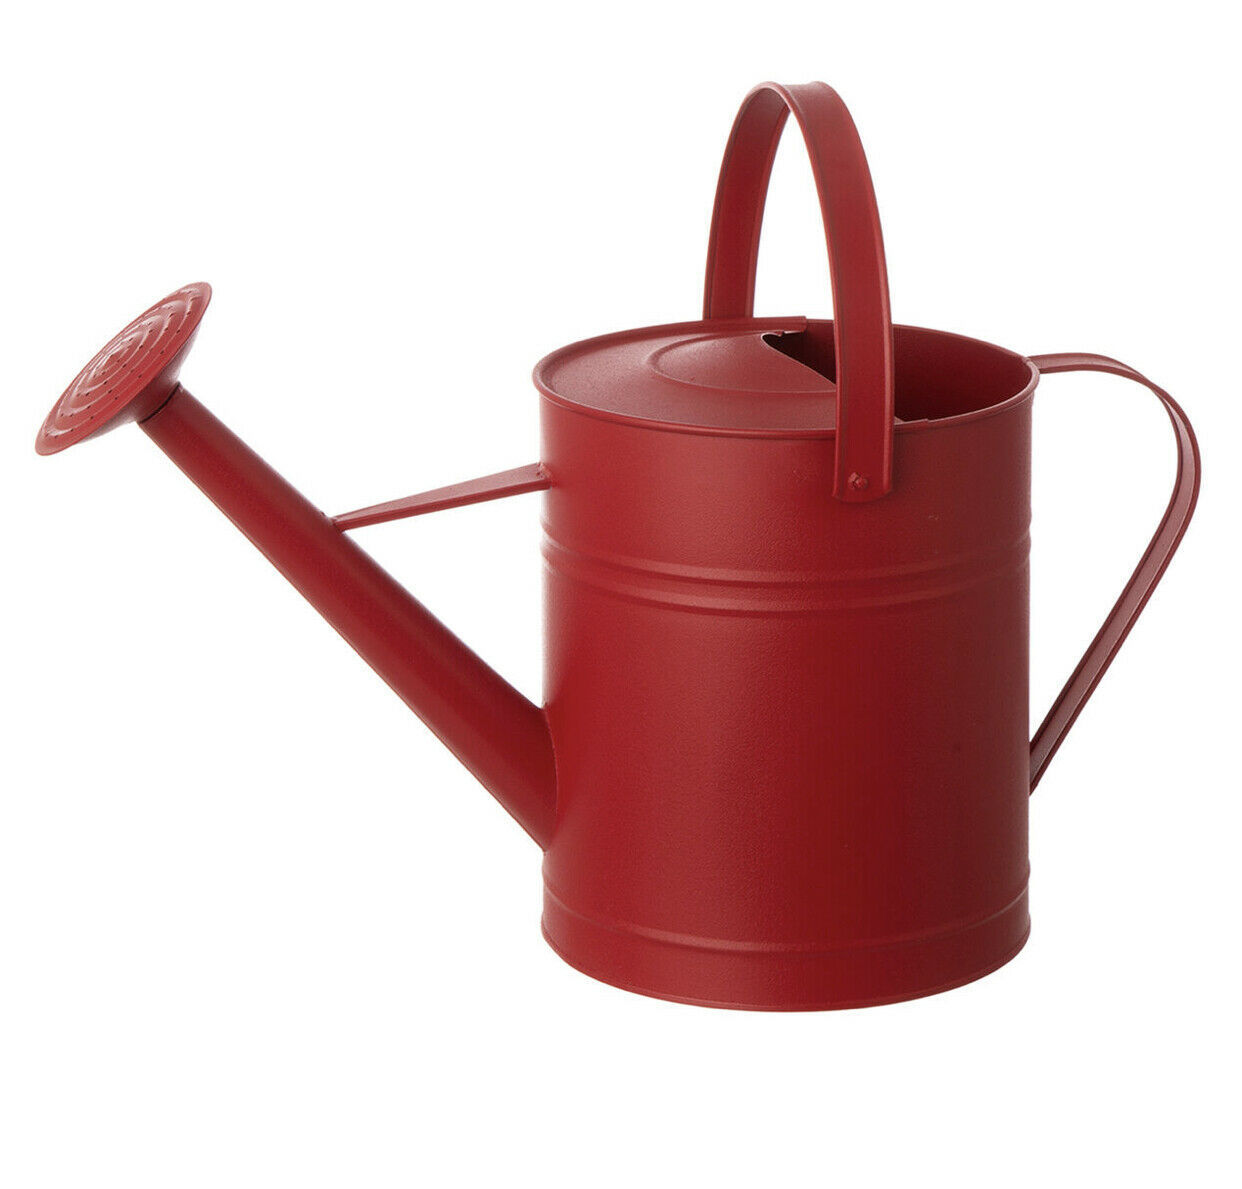 Primary image for Gardening water can 19IN RED WATERCAN MTL